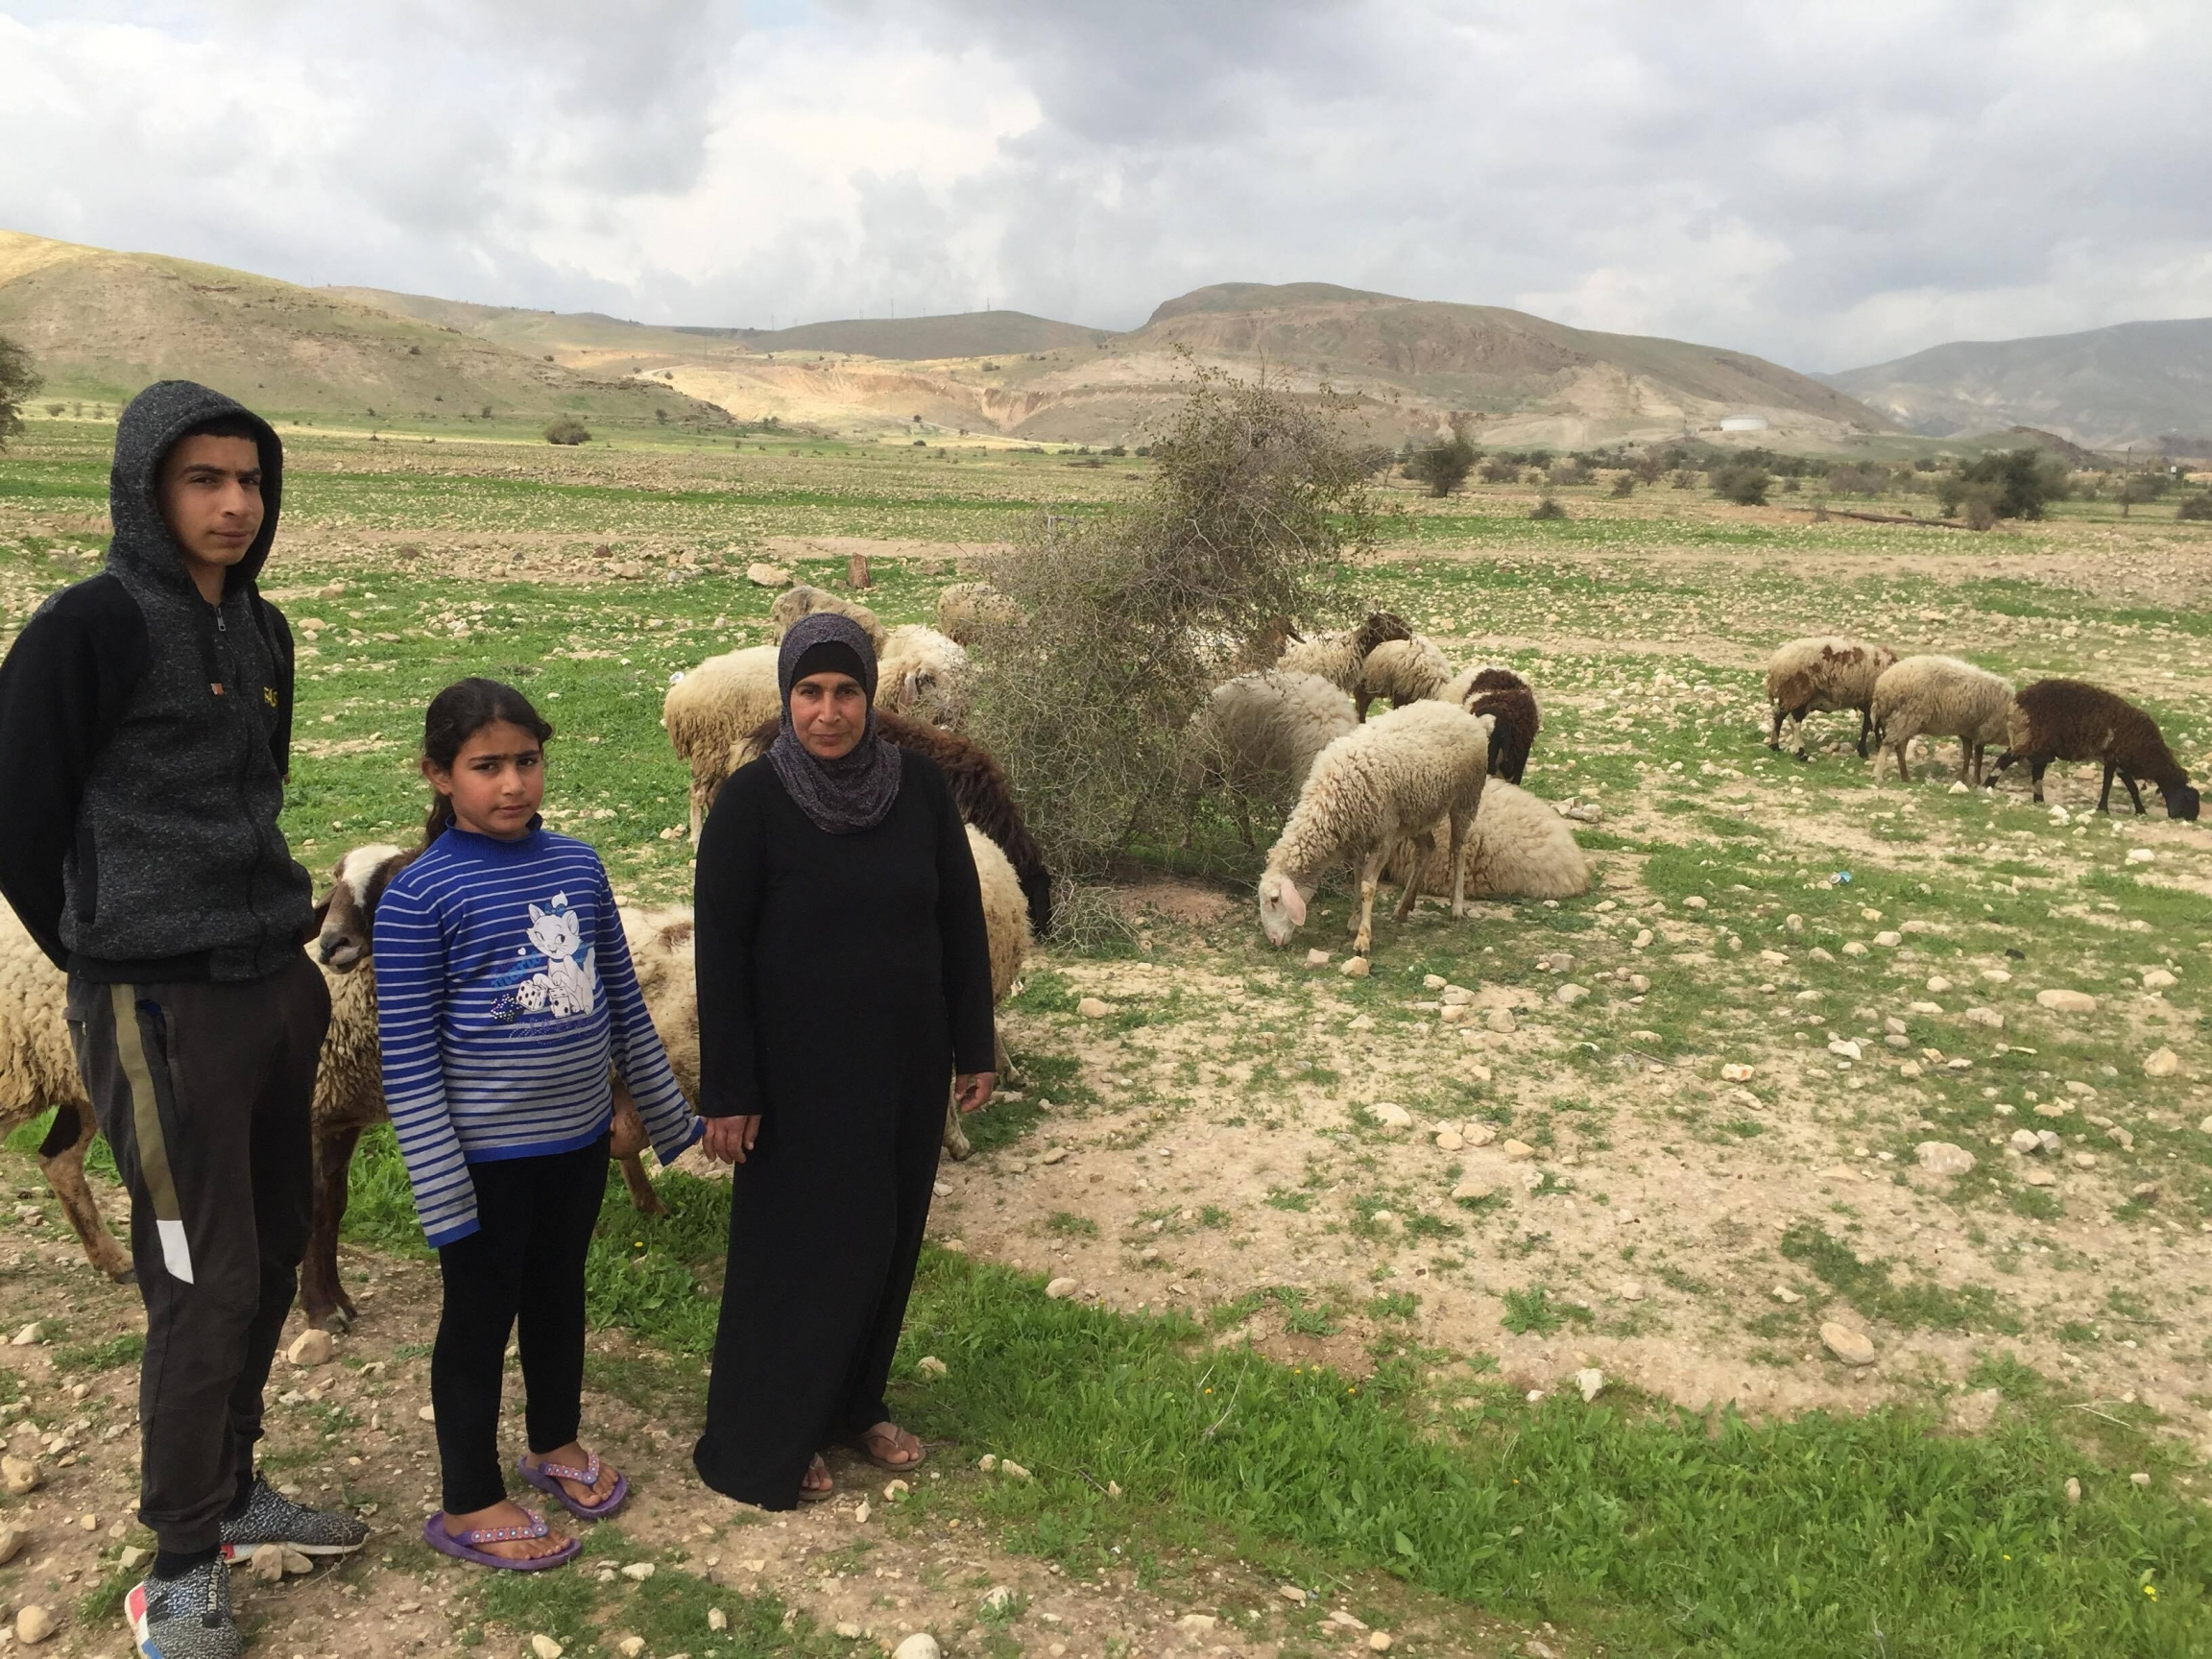 Iyad Ebbayat, left, his younger sister, and his mother, Noor Ebbayat with their sheep in the Palestinian village of Fasayil.